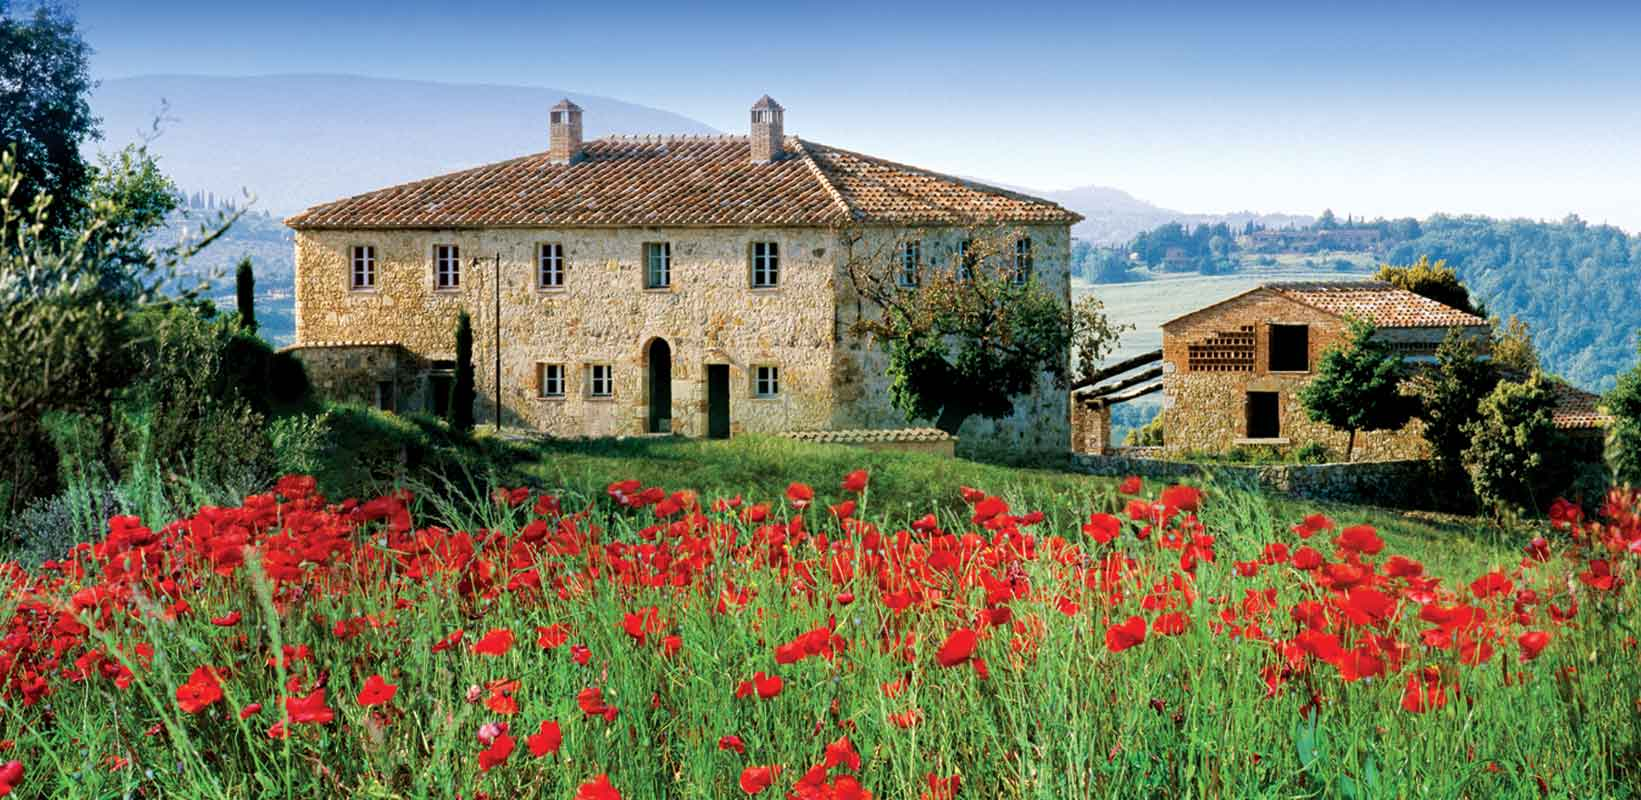 luxury vacation at Castello di Casole in Tuscany